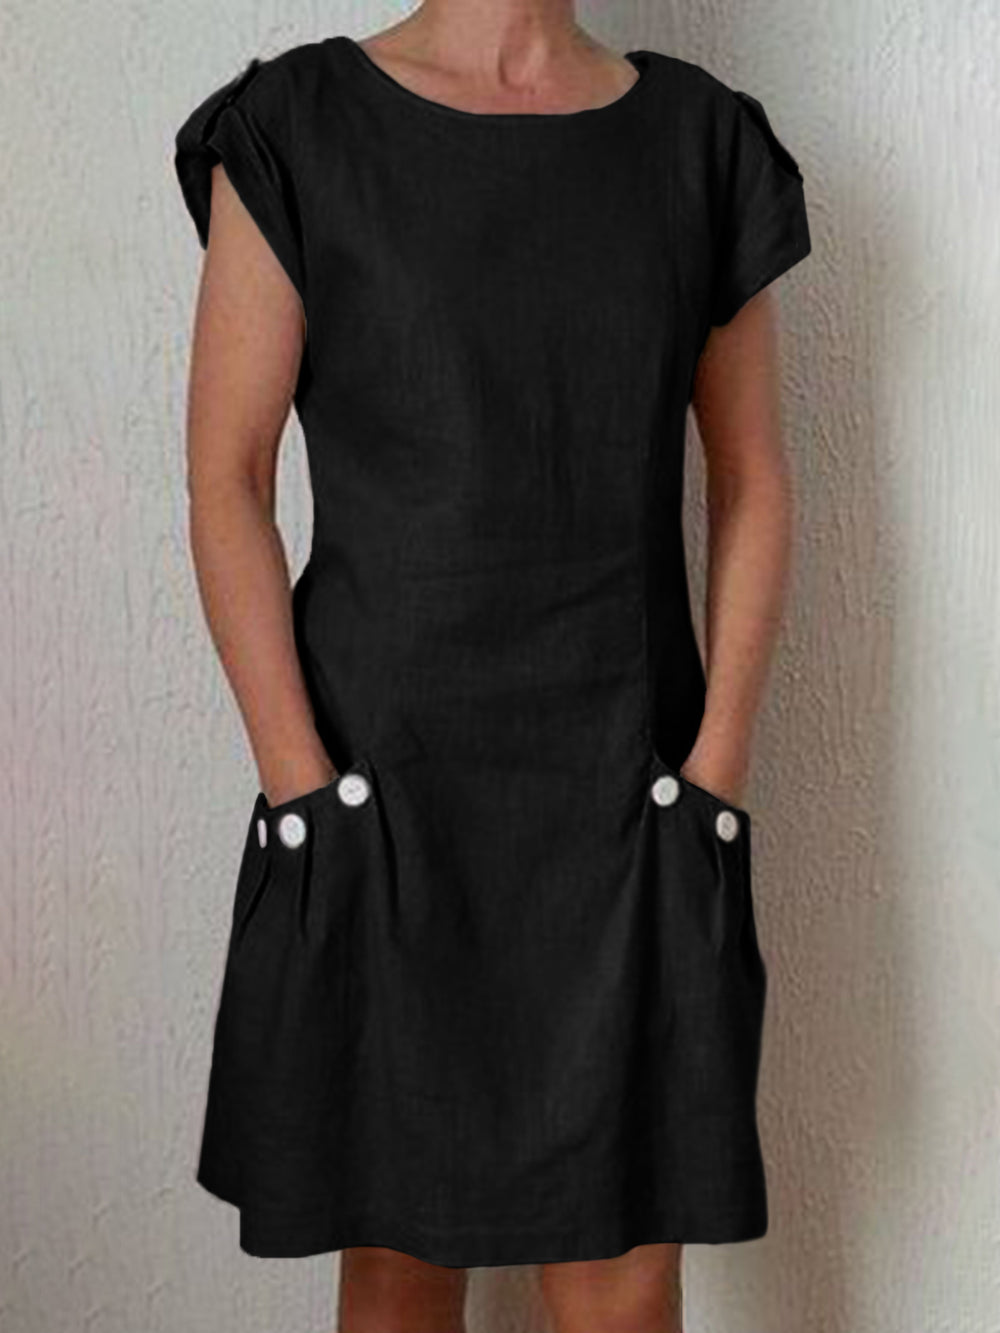 Structured Shift Dress Fashion Formal Short Dress